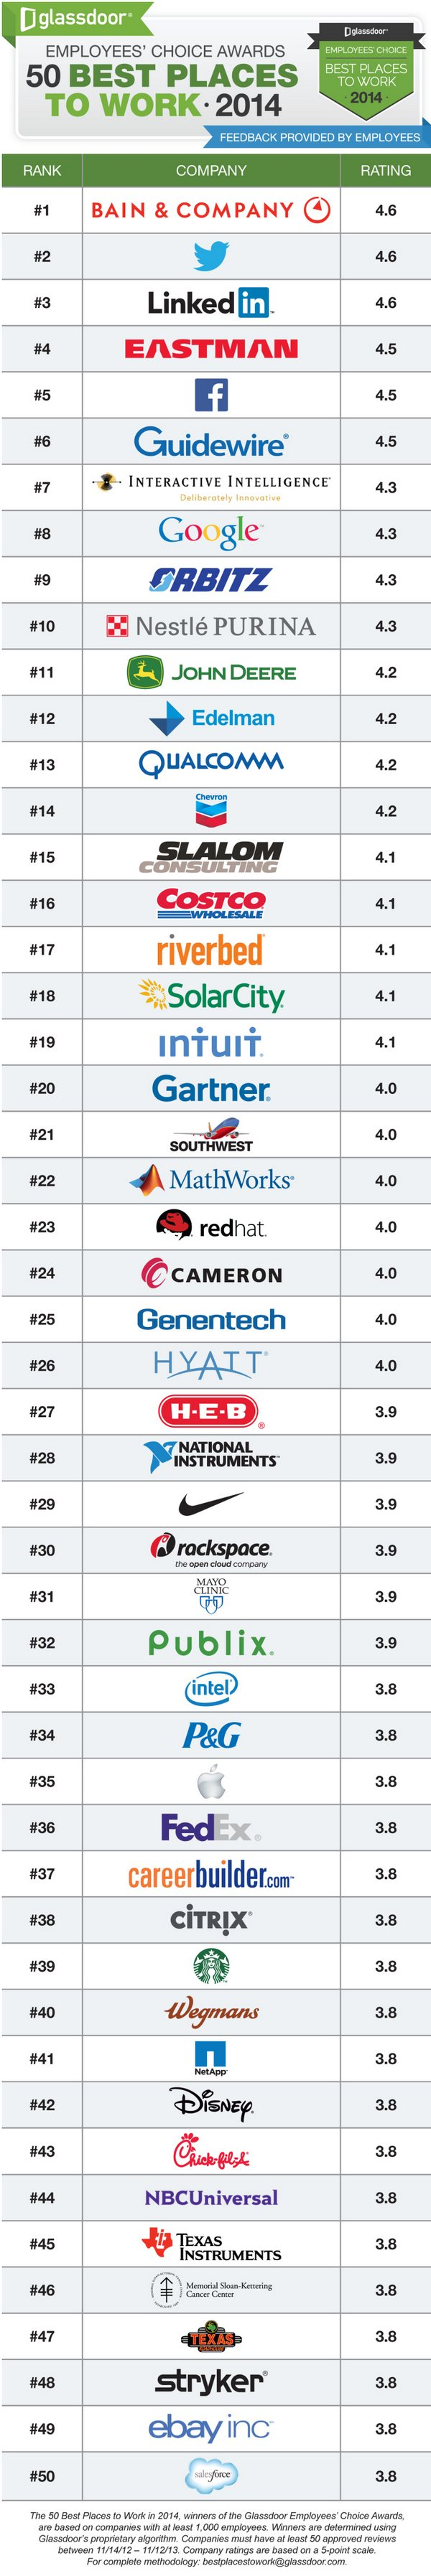 top-50-companies-to-work-2014